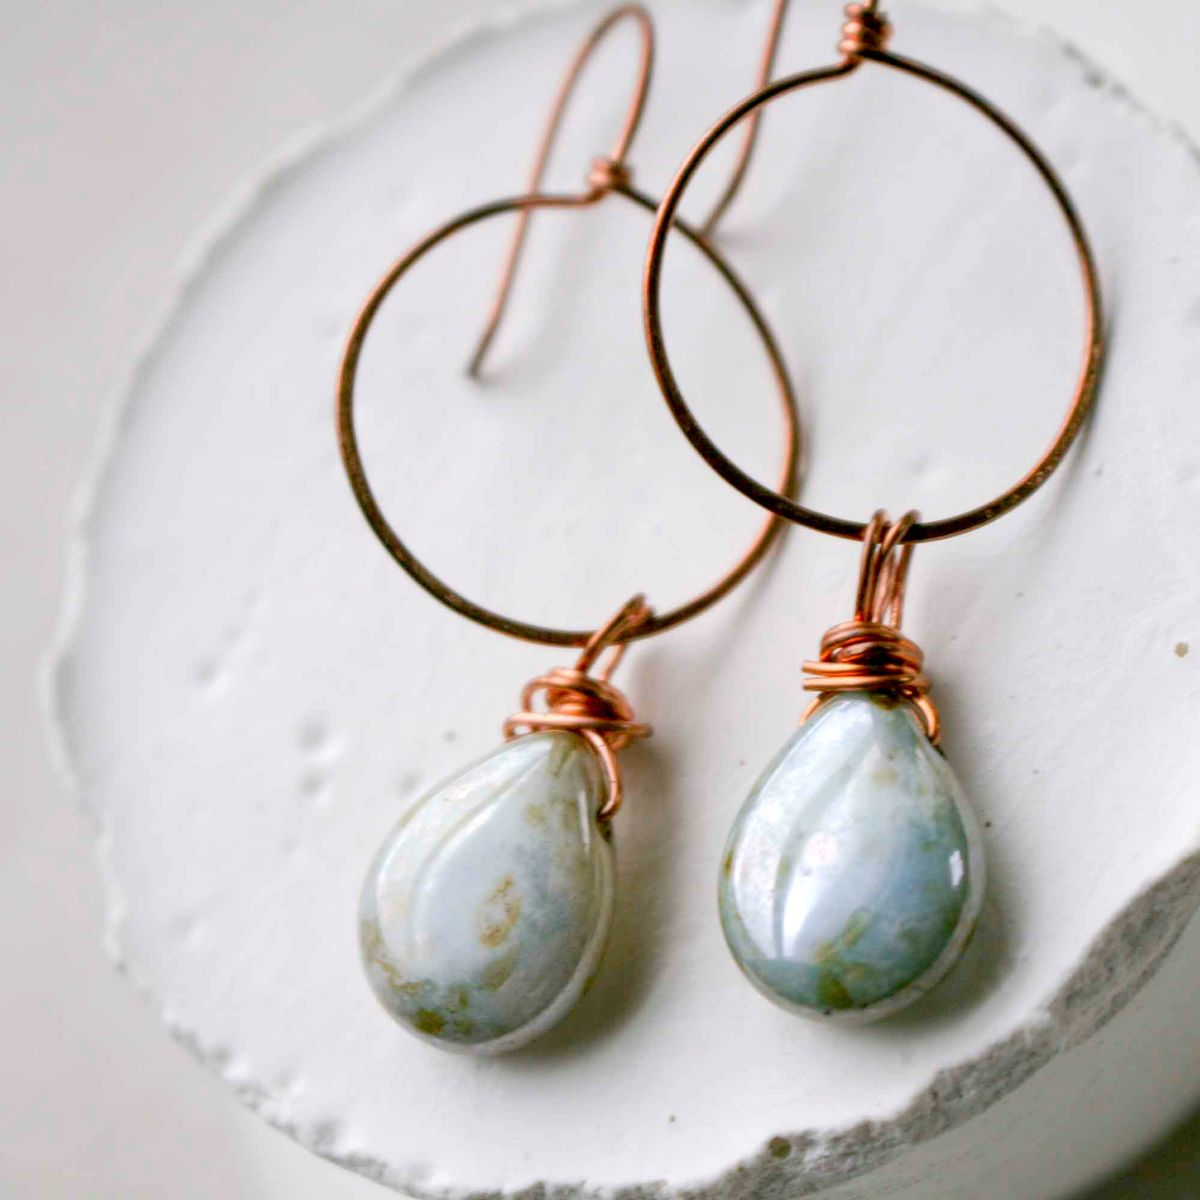 Round Copper Hoop Earring with Tear Drop Glass Beads - product images  of